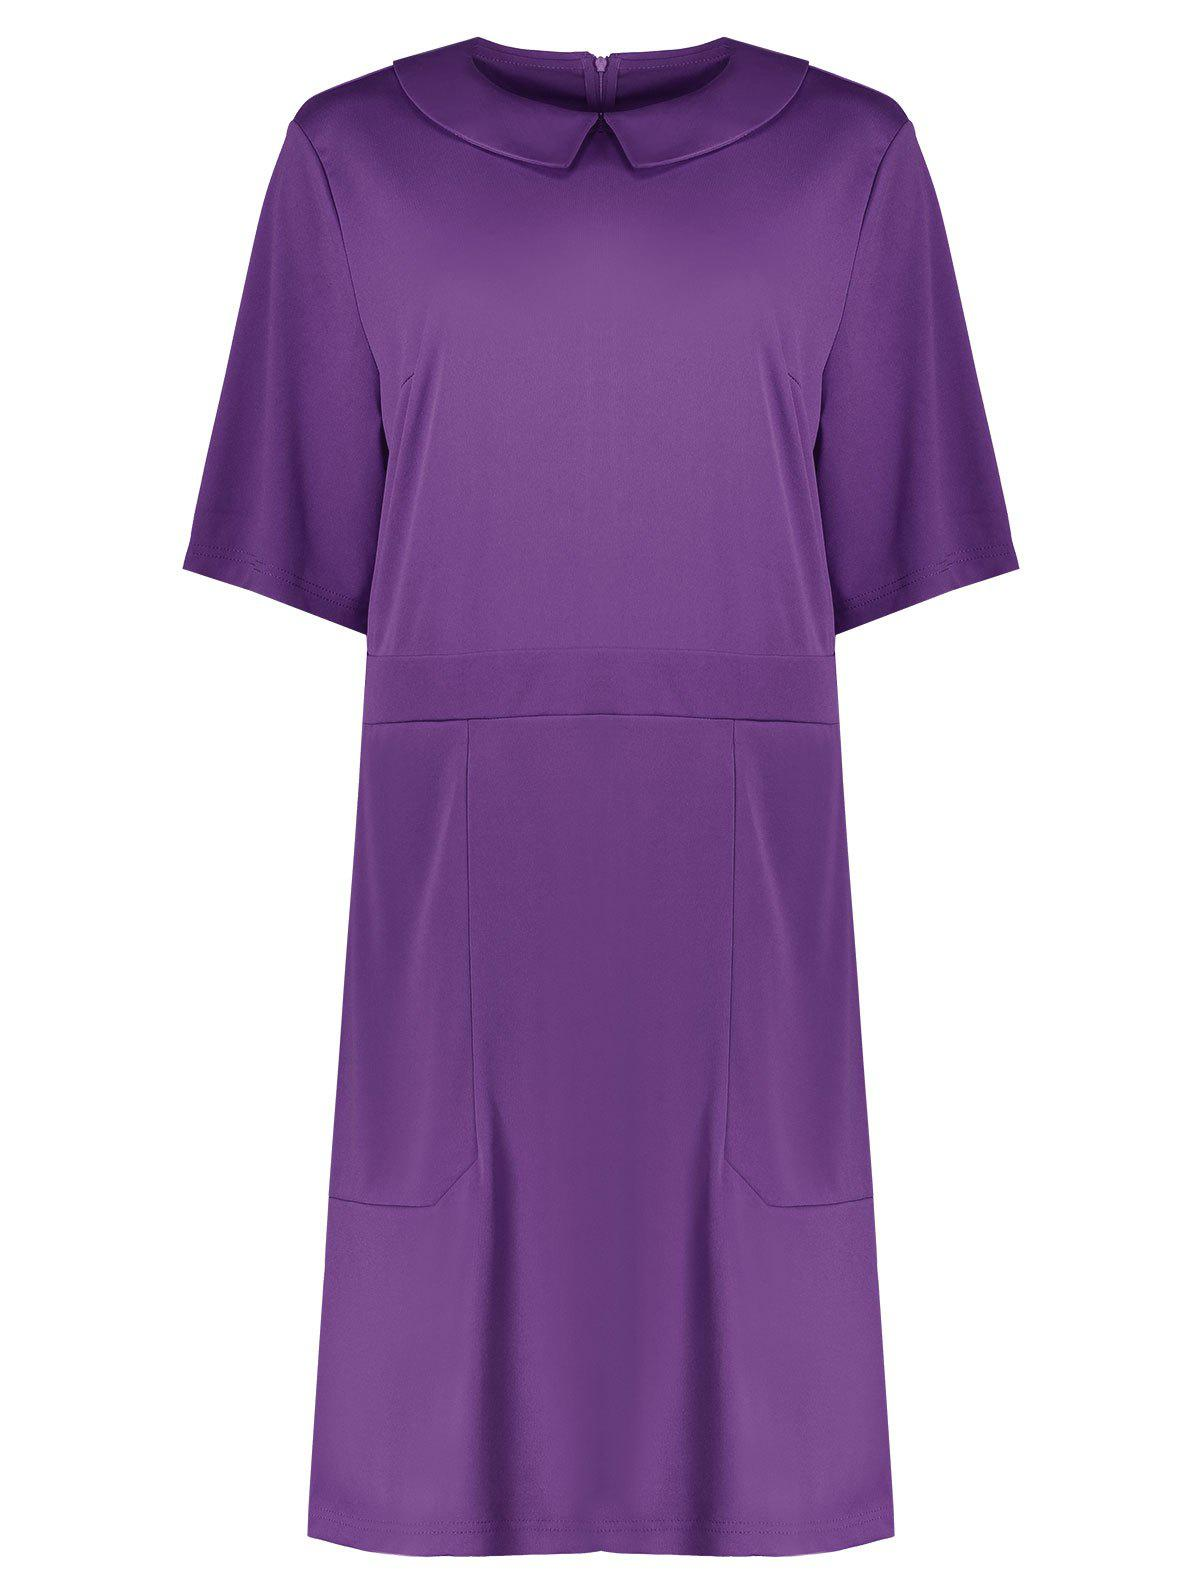 Plus Size Collared A Line Dress with Pockets - PURPLE 6XL